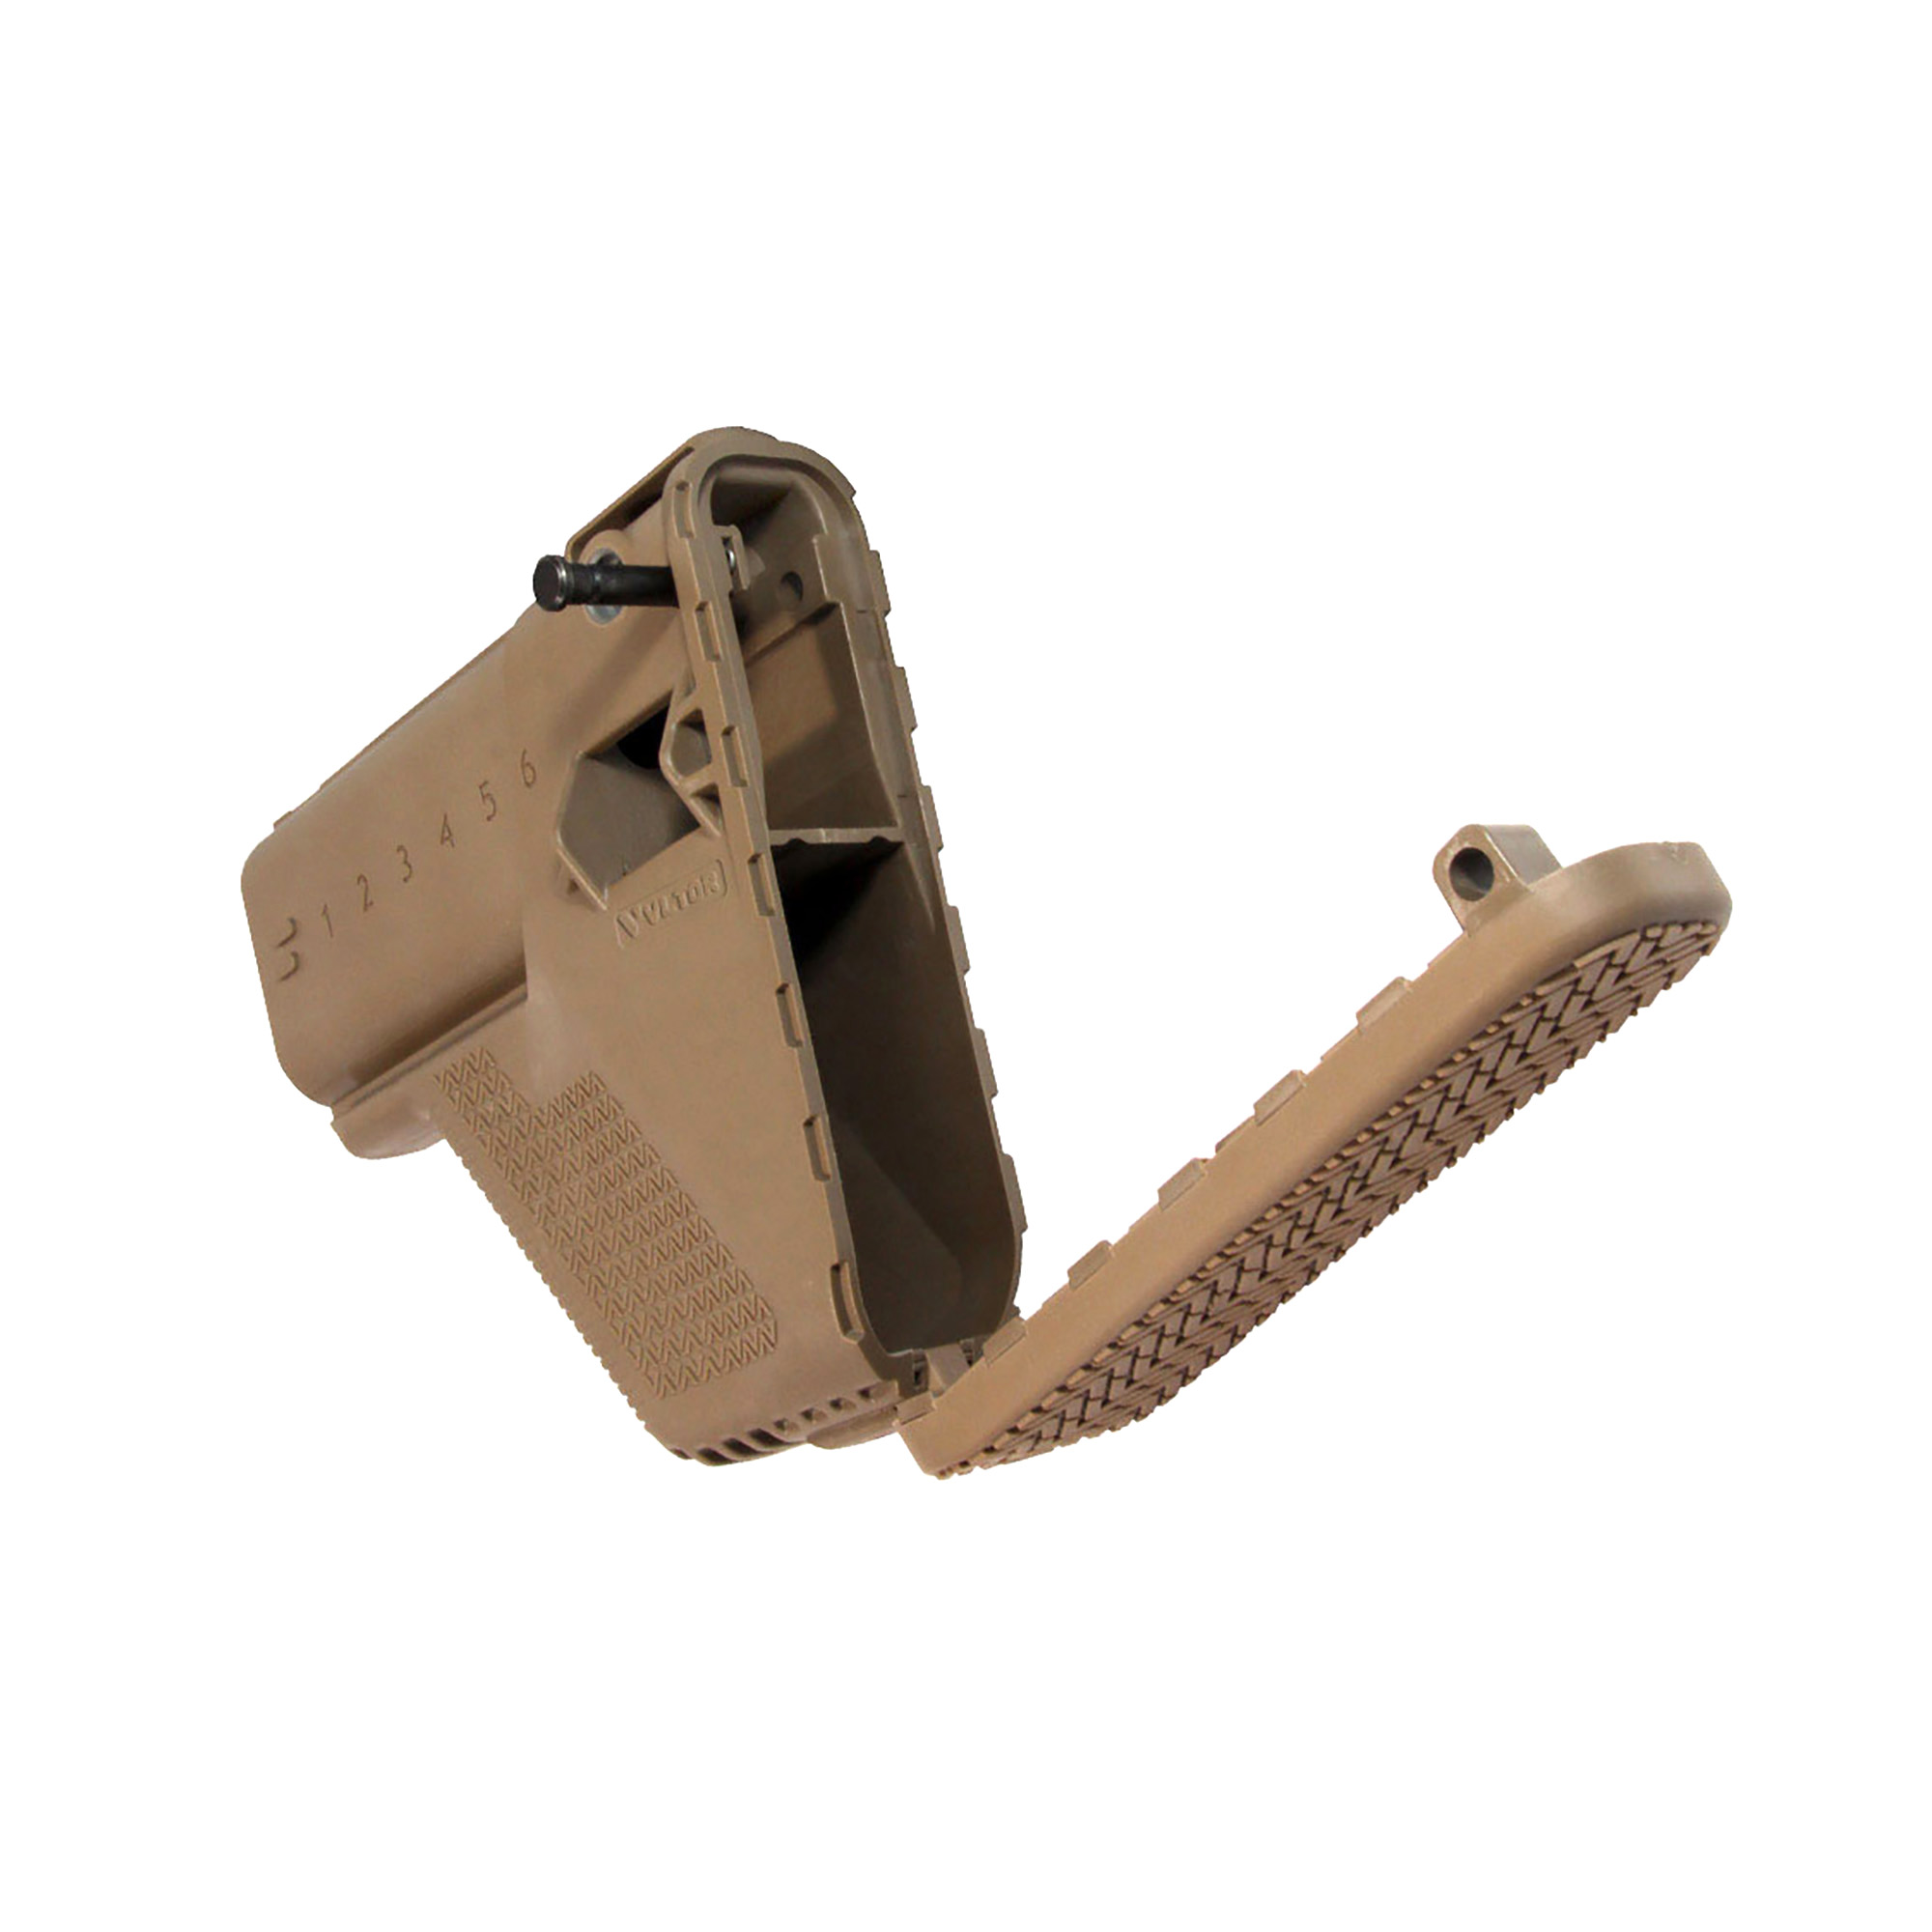 """This replacement module for the FN SCAR incorporates the same battle-proven enhancements from the VLTOR modstocks. The buttpad has been re-shaped to include a negative pitch for a more natural transition to the ready position. Storage space"""" QD sling swivel sockets"""" and a metal reinforcement plate have been added for greater usability and function. The VLTOR SCAR stock is a necessary upgrade to the OE SCAR buttstock."""